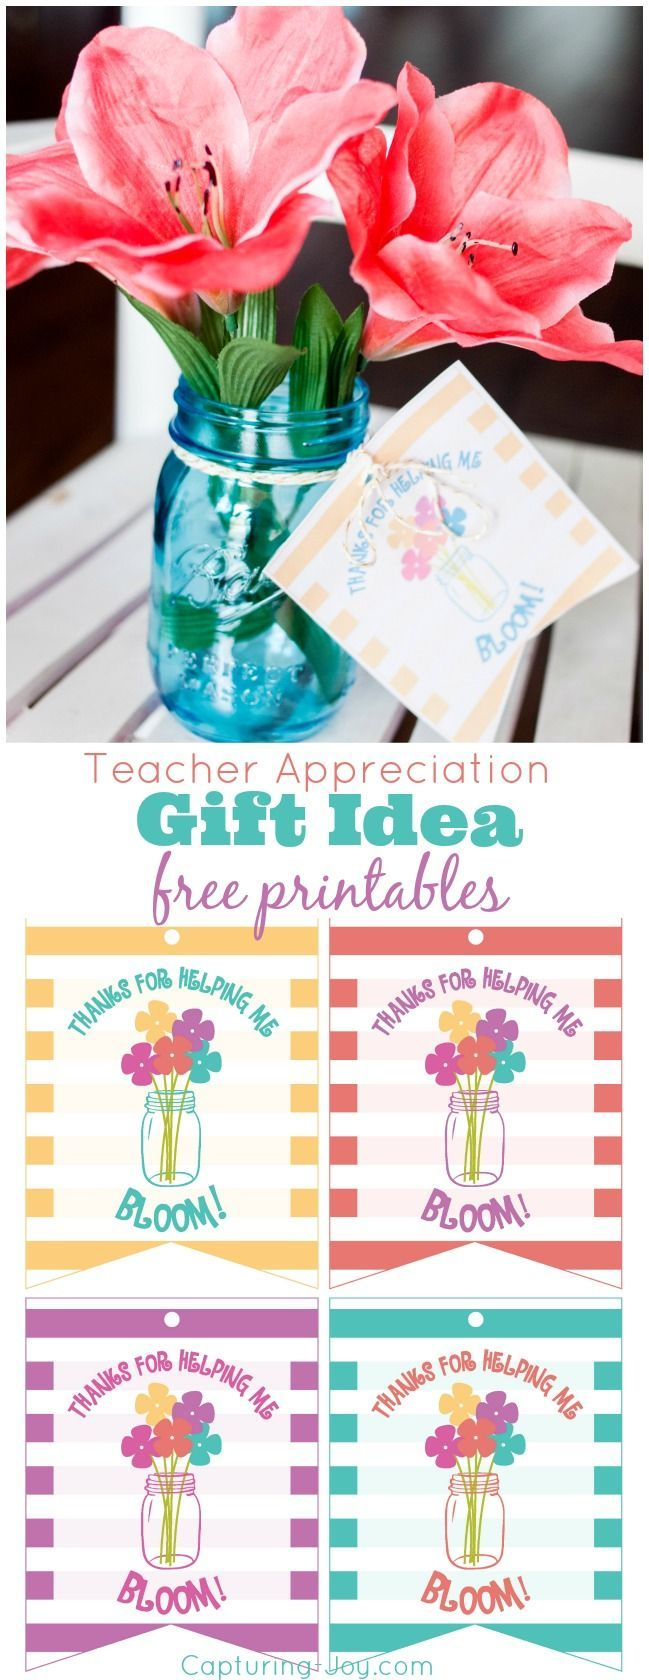 439 best celebrate teacher appreciation images on pinterest teacher appreciation gift idea free printables in 4 colors thank you for helping me bloom negle Gallery